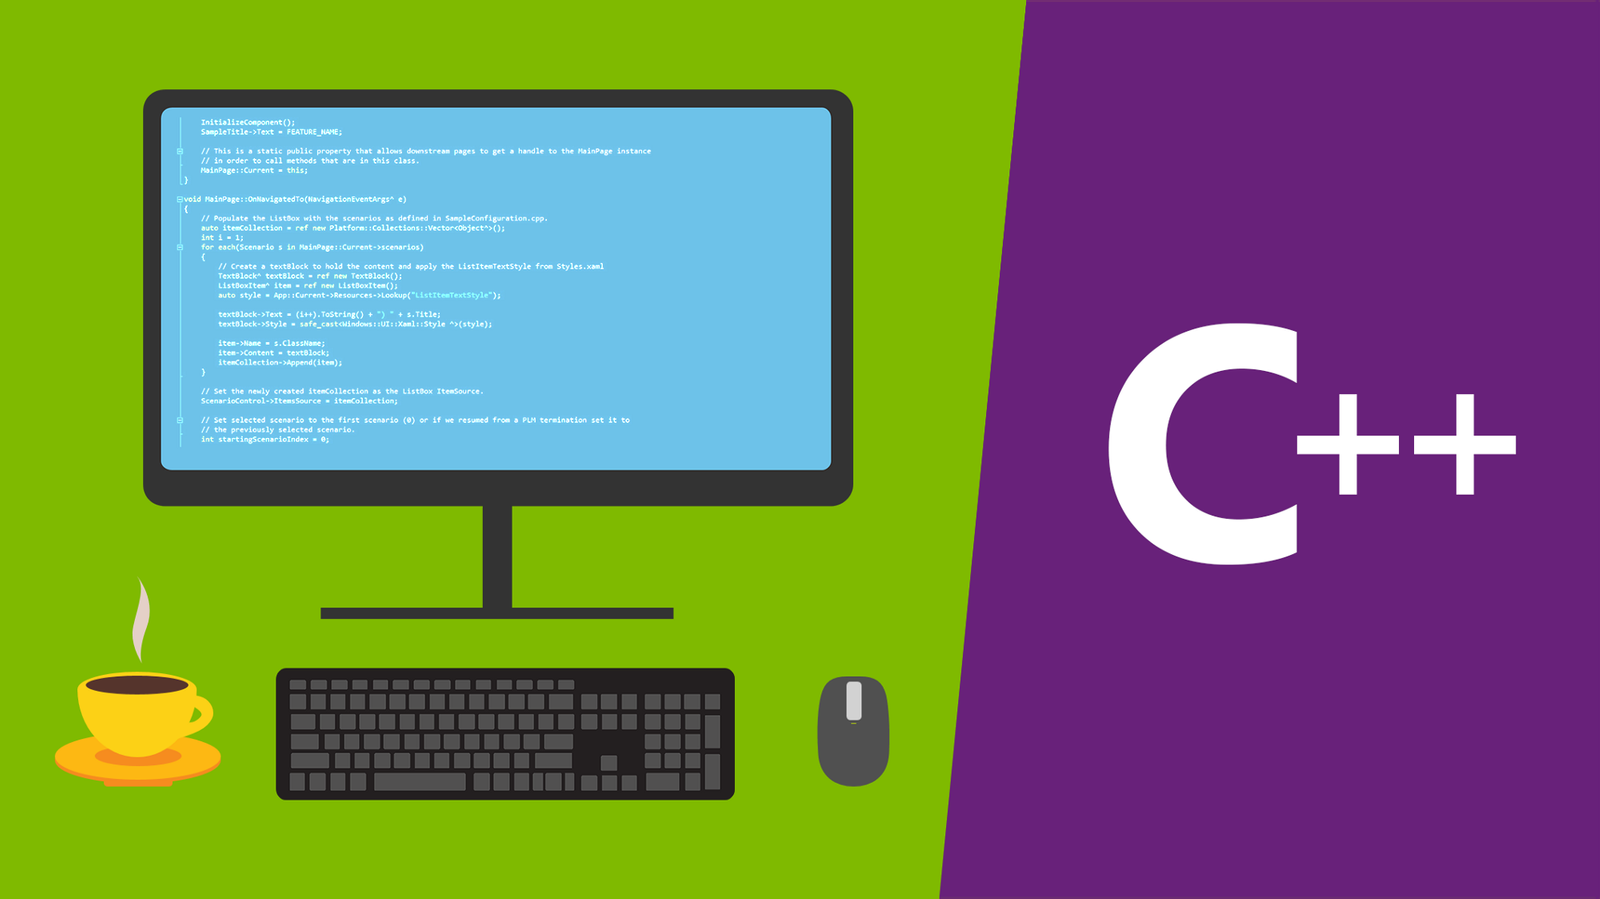 Why Use C++ for Developing Business Applications?